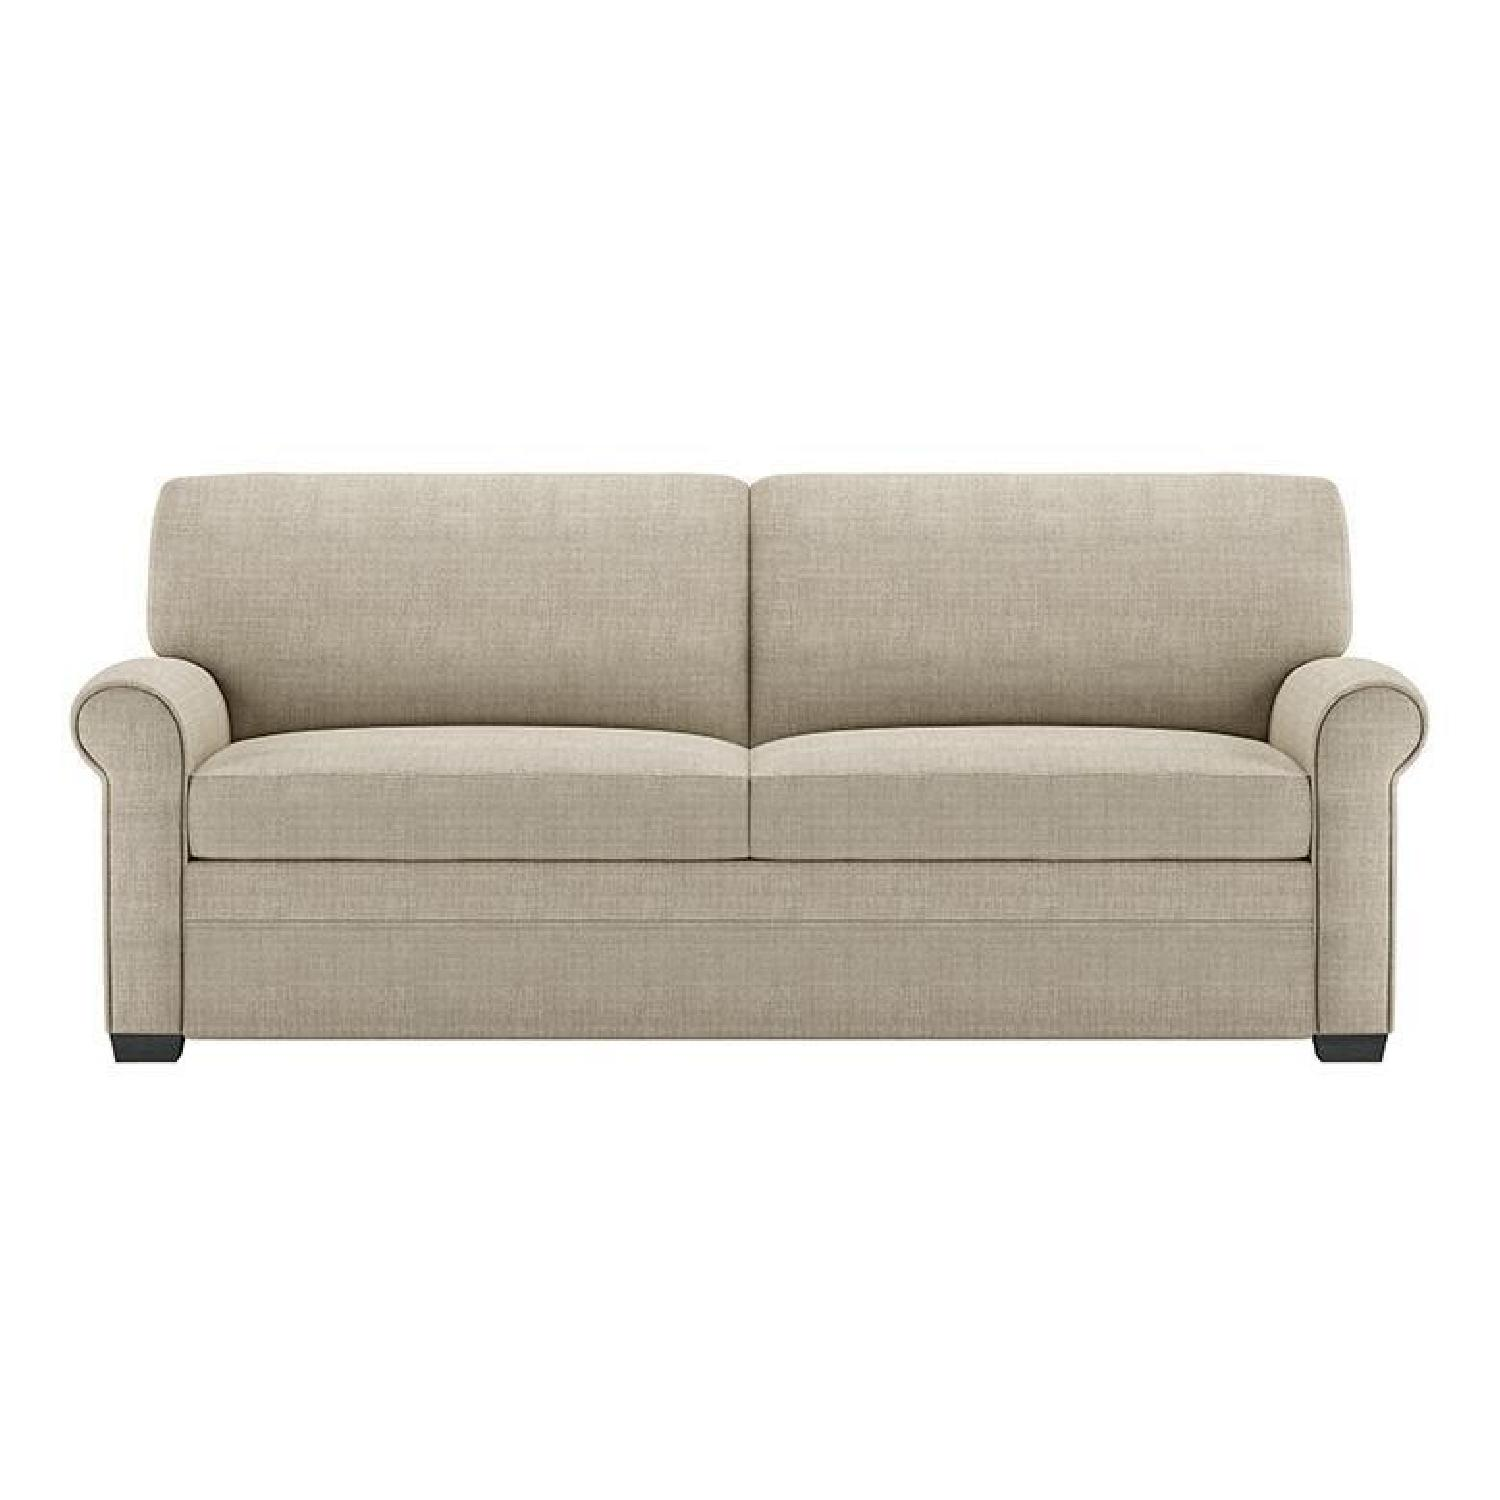 American Sofa Images American Leather Gaines Queen Tempur Pedic Sleeper Sofa